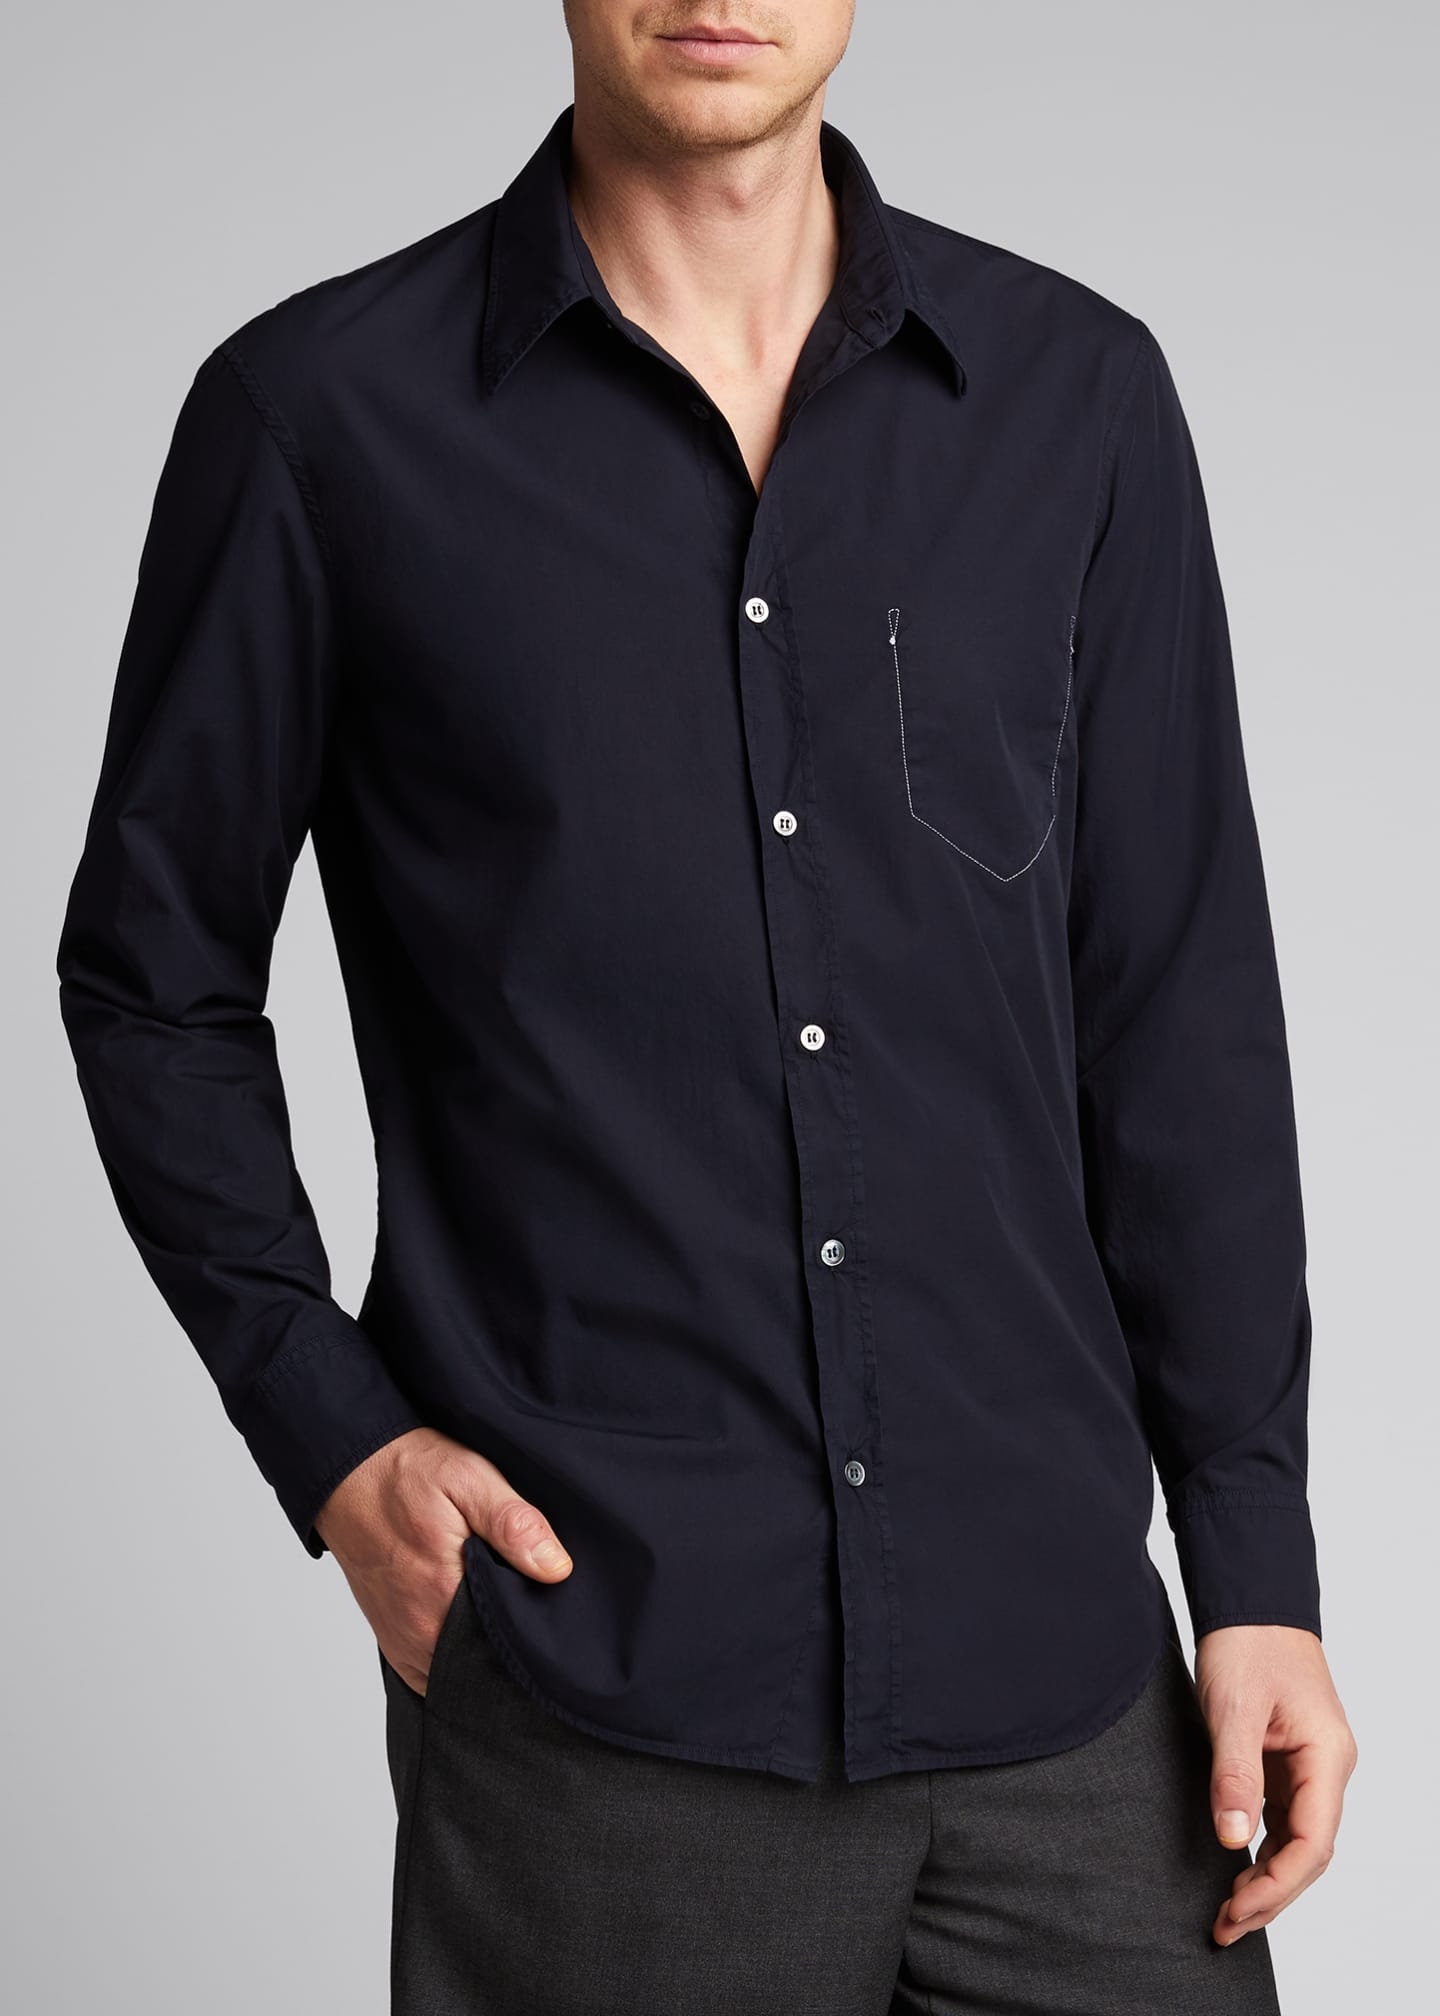 Image 3 of 5: Men's Garment-Dyed Sport Shirt w/ Pocket Stitching